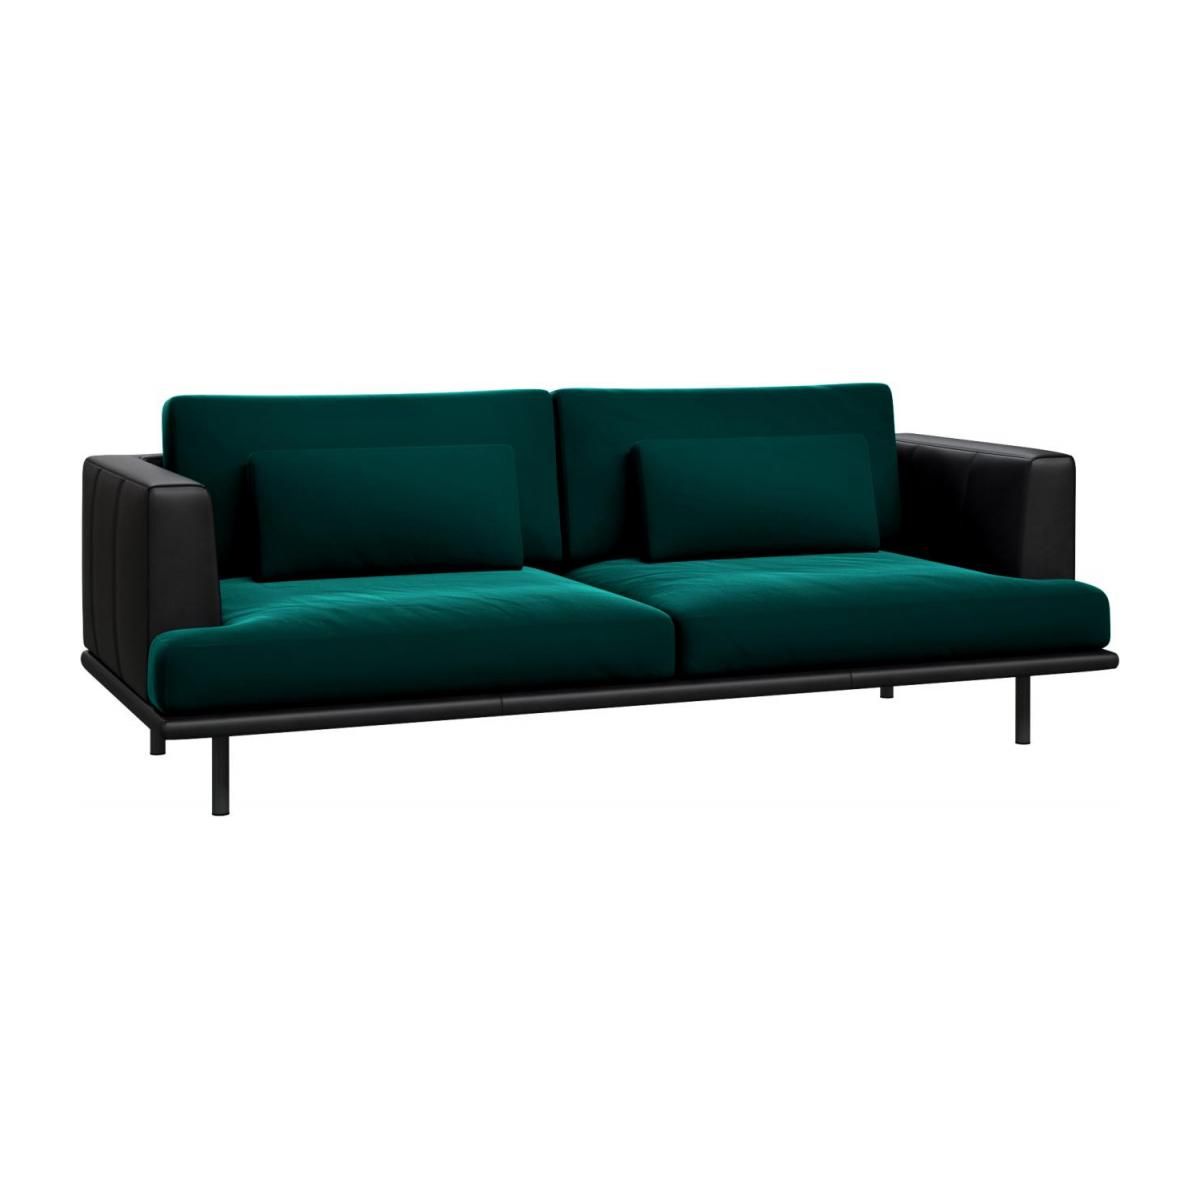 3 seater sofa in Super Velvet fabric, petrol blue with base and armrests in black leather n°1